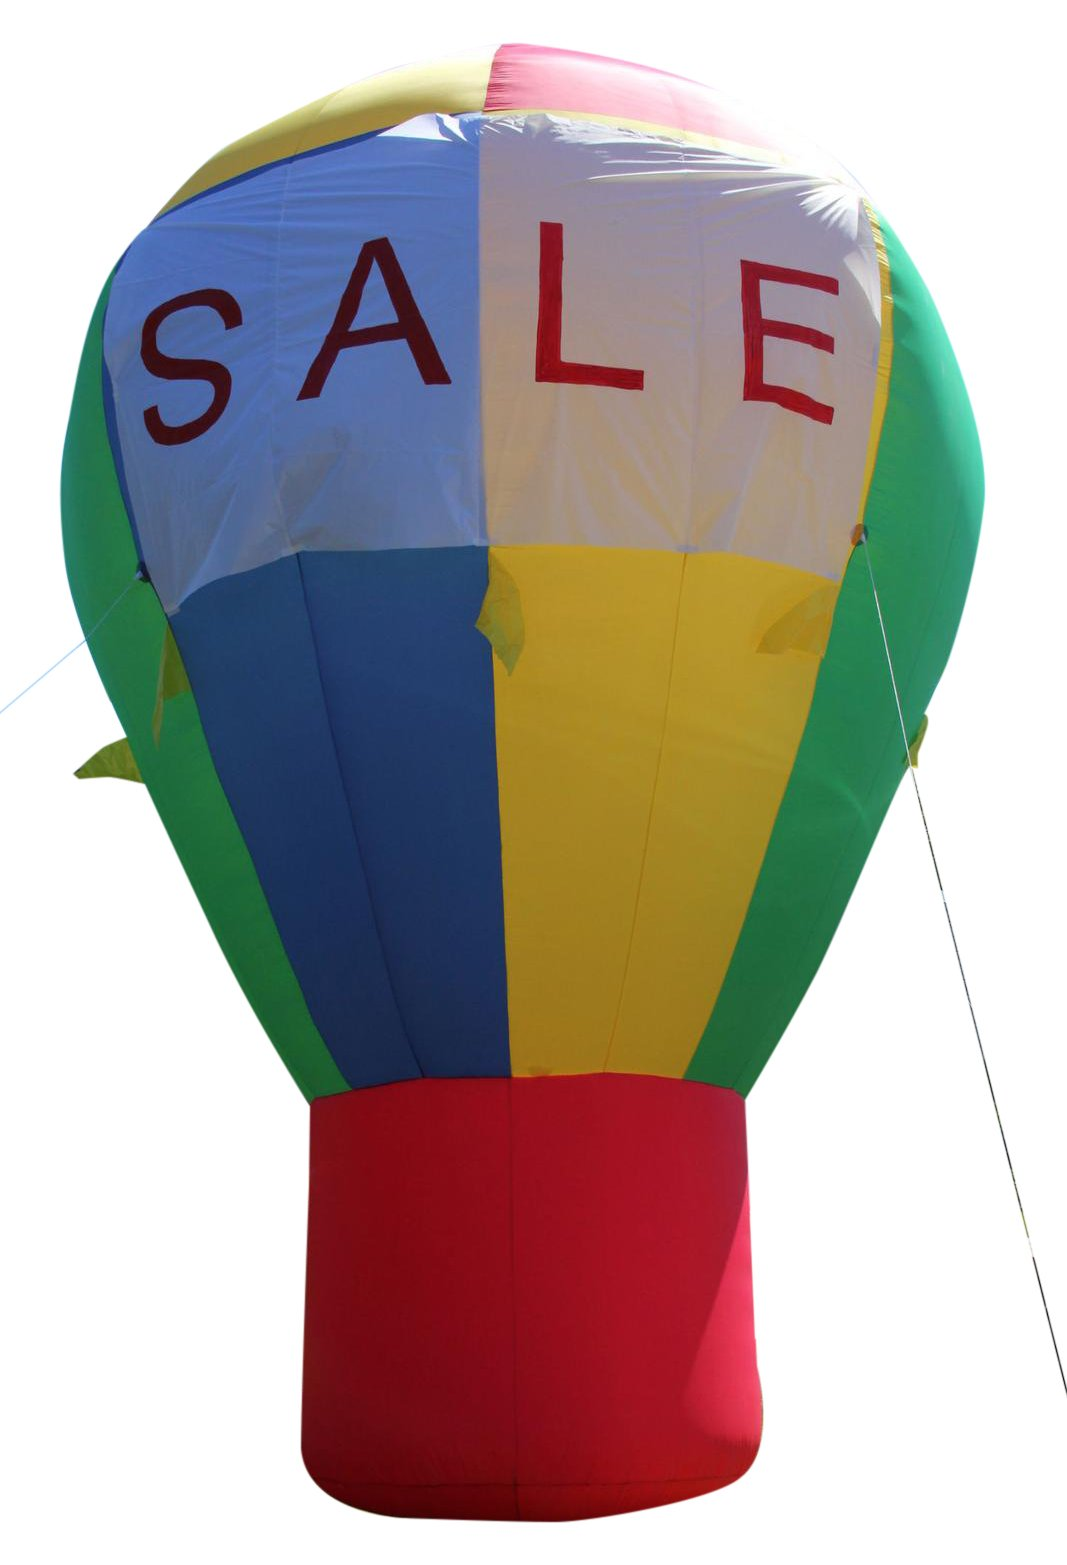 CC Inflatables 20' Promotional Advertising Inflatable Hot Air Style Balloon - Rainbow Color